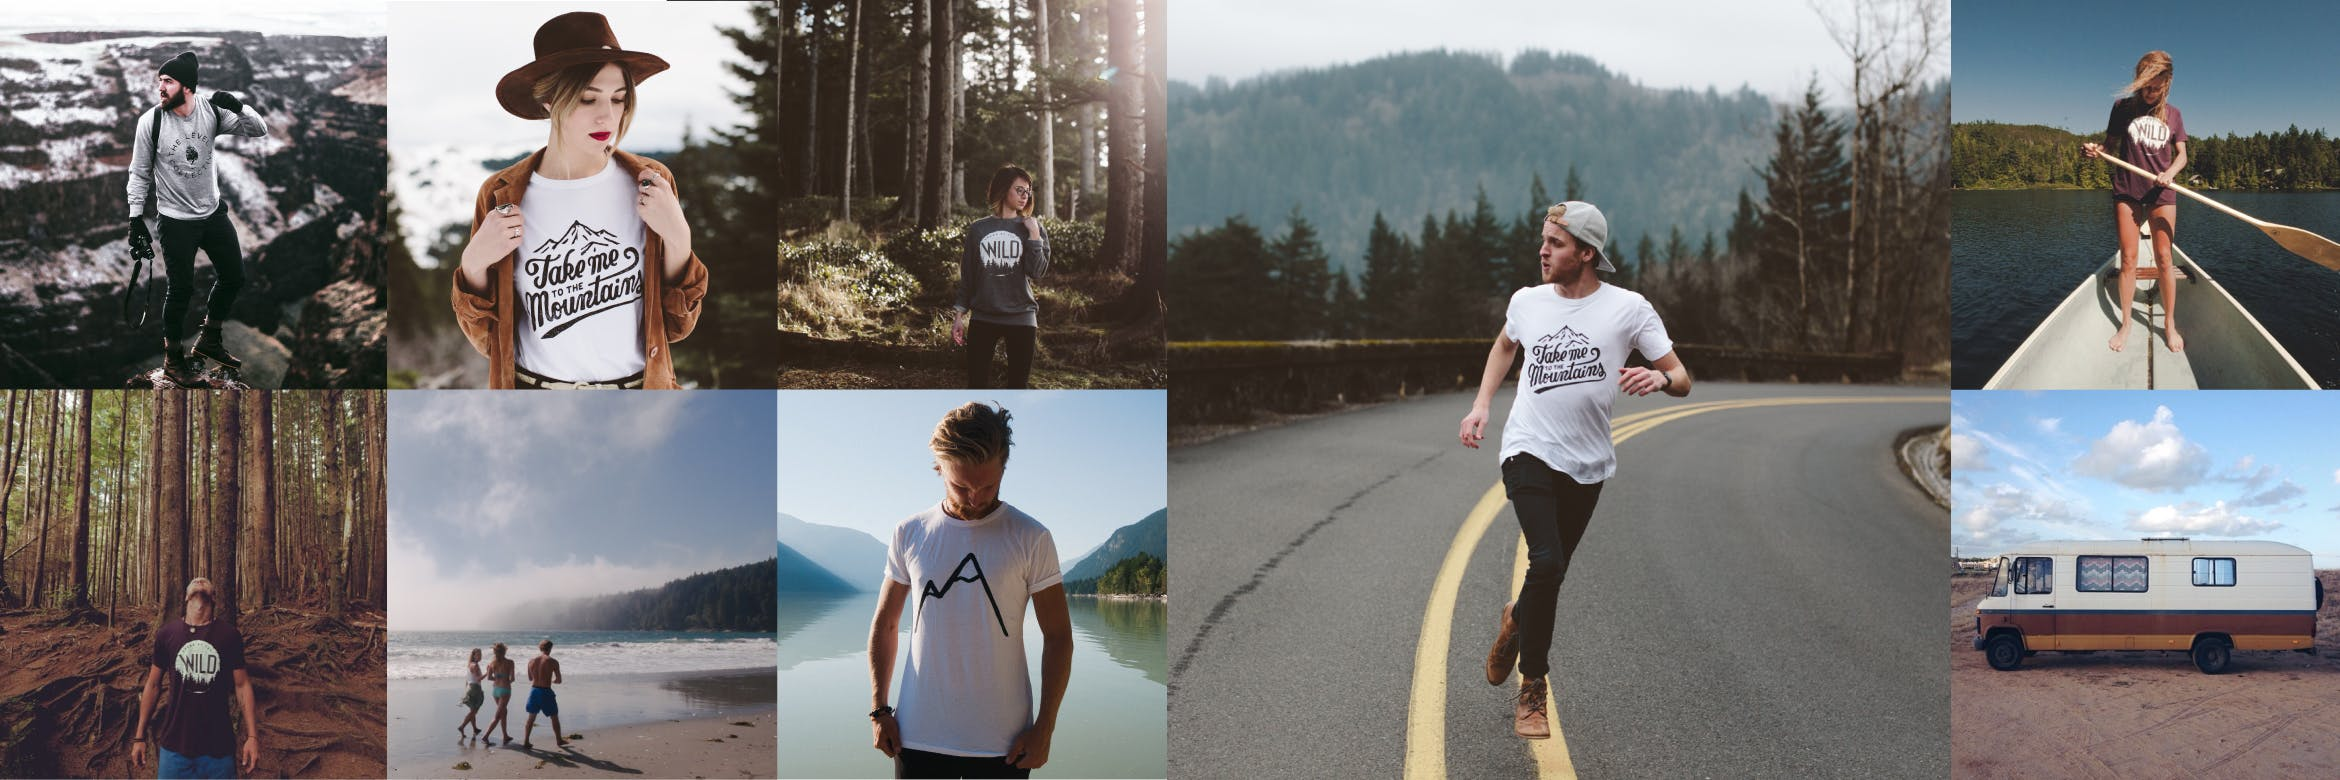 Minimalist t-shirt adventure collection